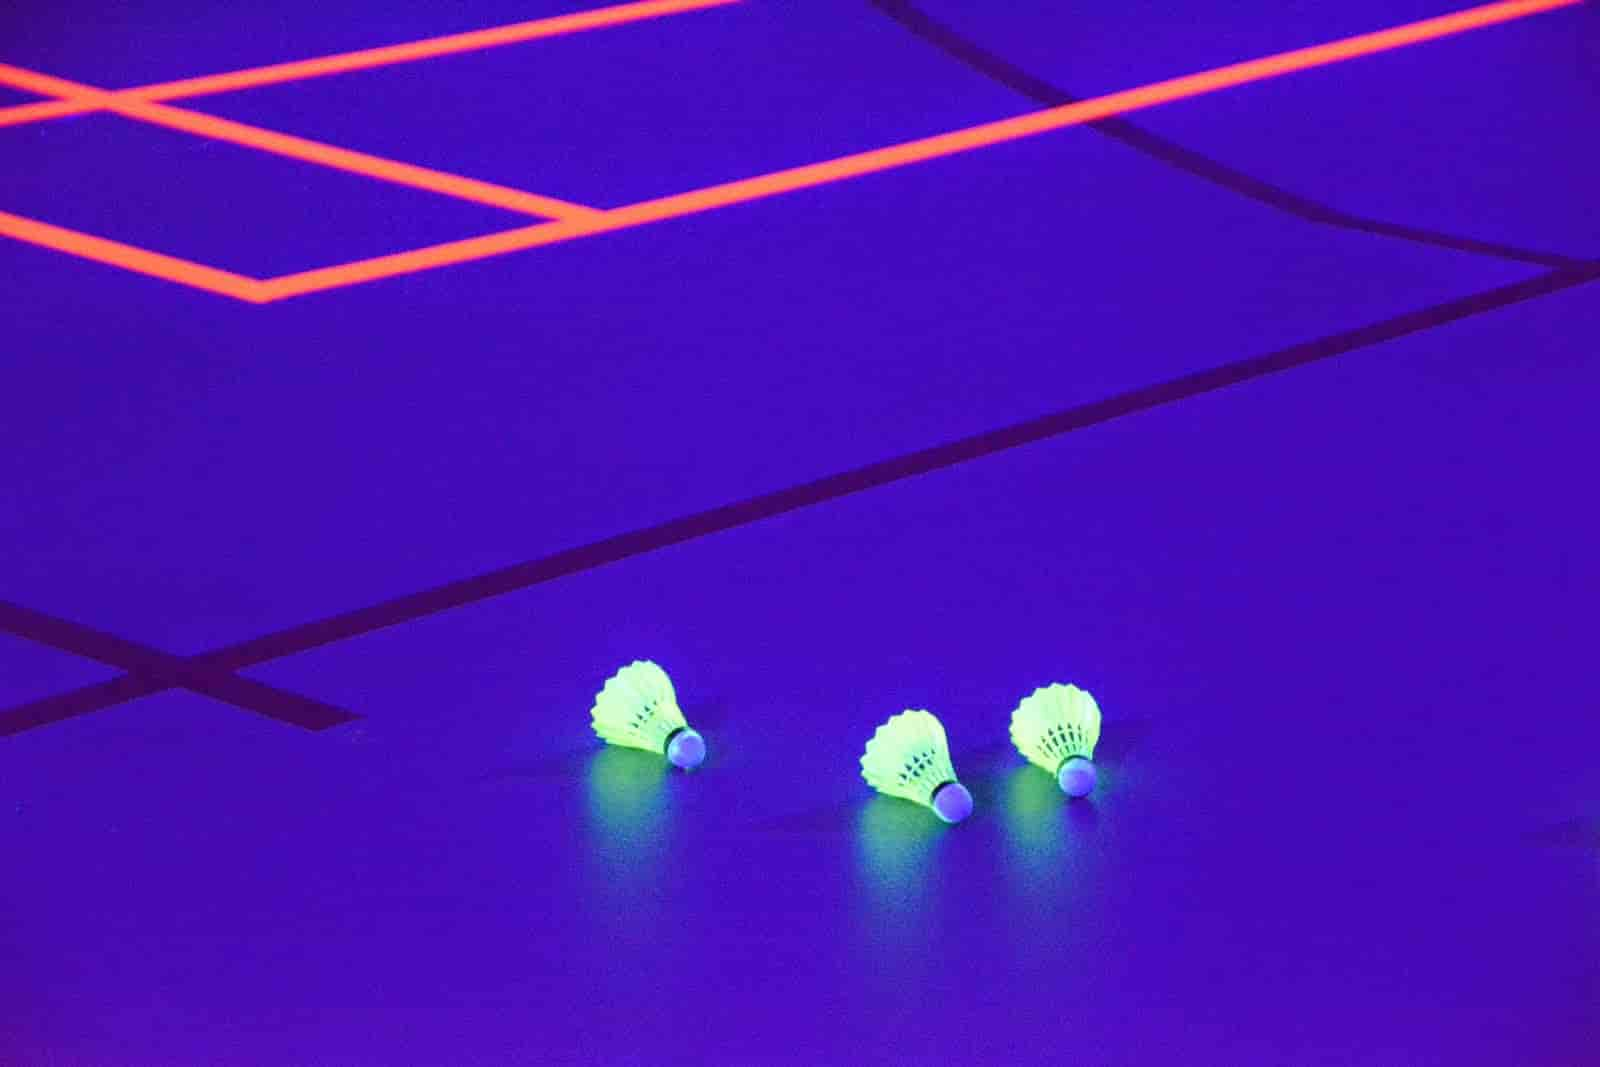 Blacklight badminton